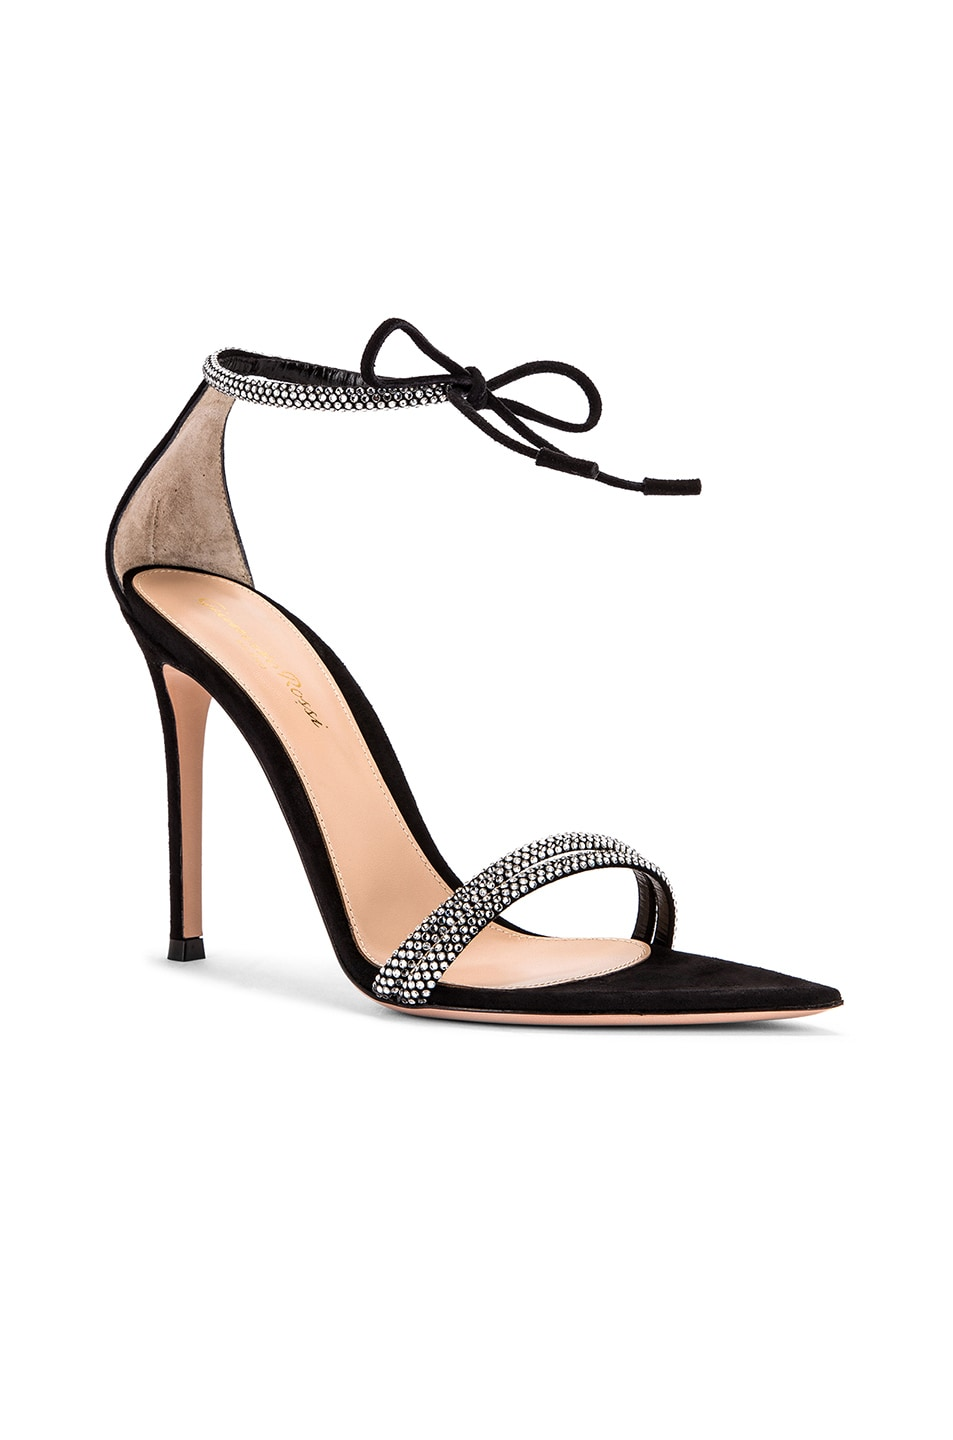 Image 2 of Gianvito Rossi Camoscio Crystal Ankle Strap Heels in Black